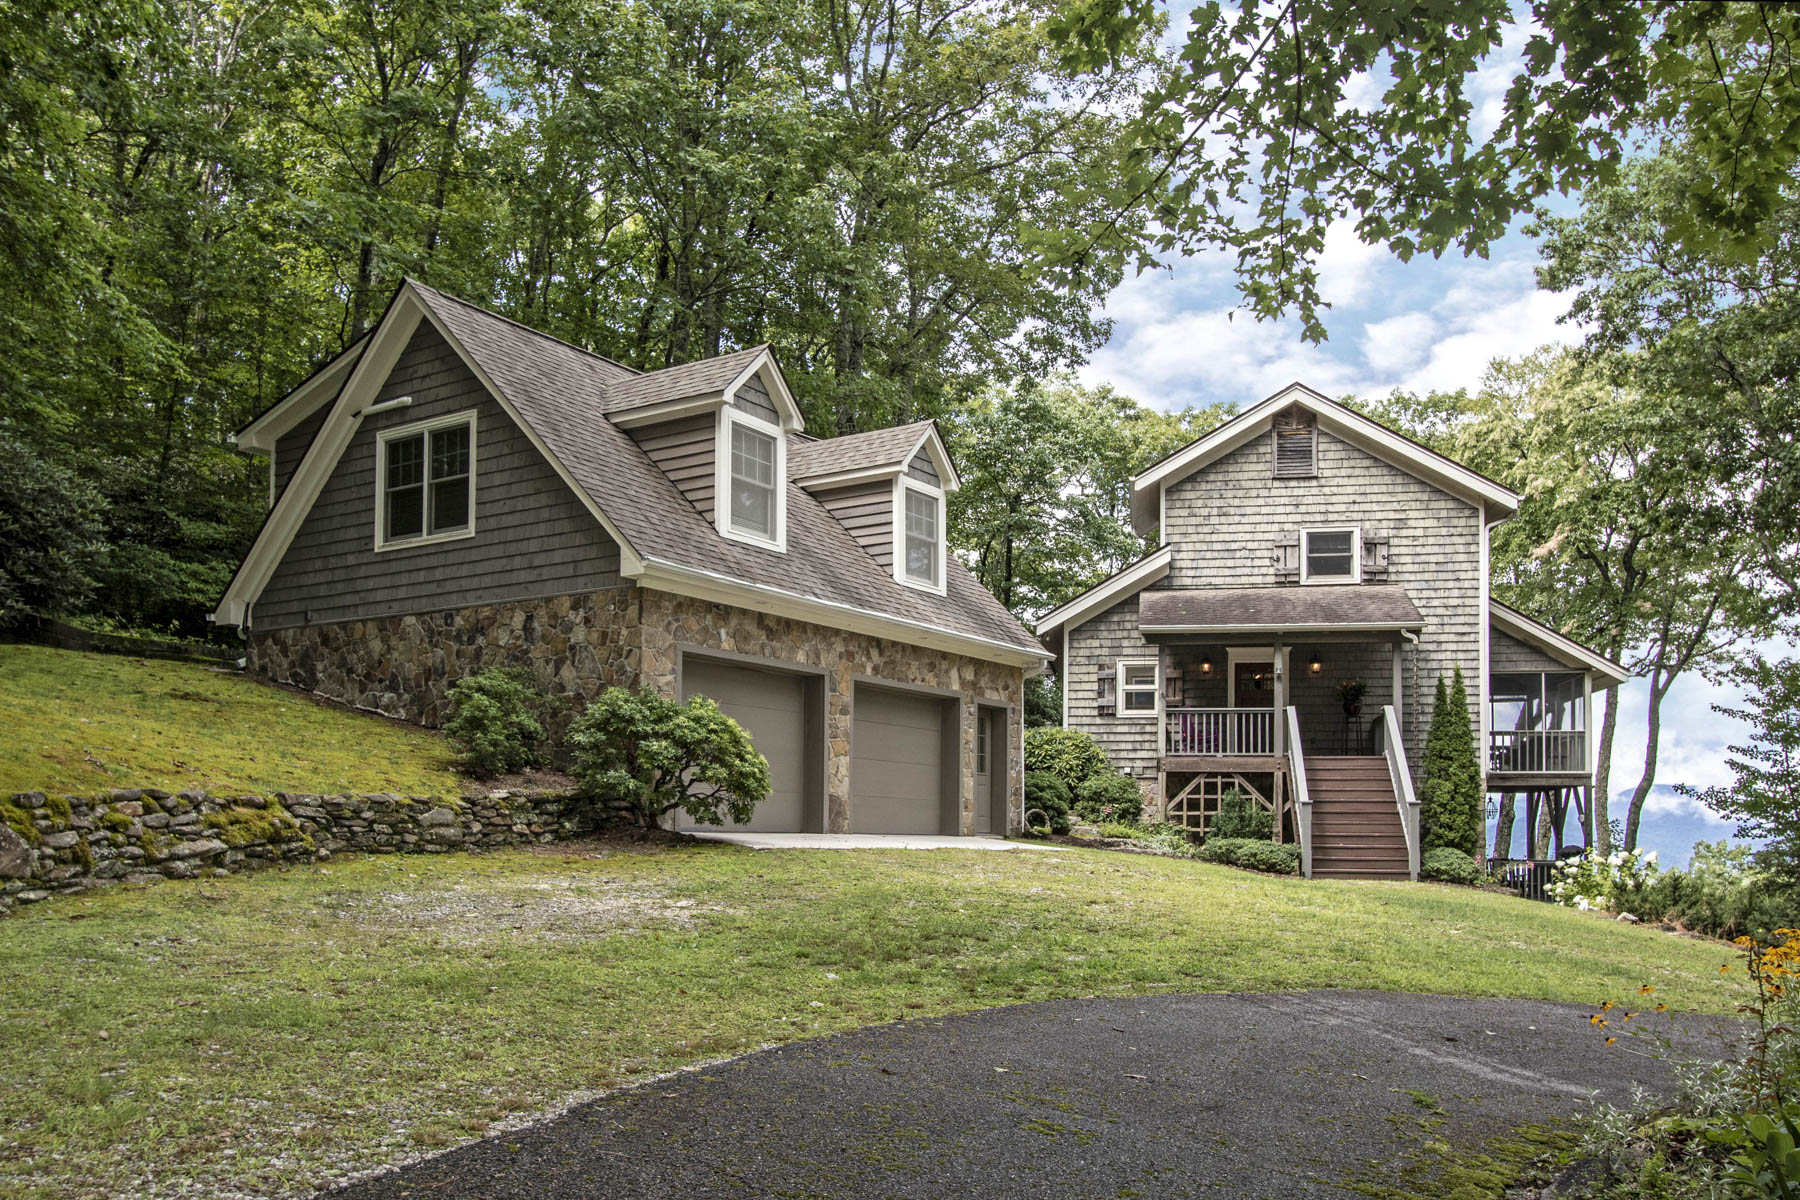 Single Family Homes for Sale at 61 Tater Hill Road Scaly Mountain, North Carolina 28775 United States